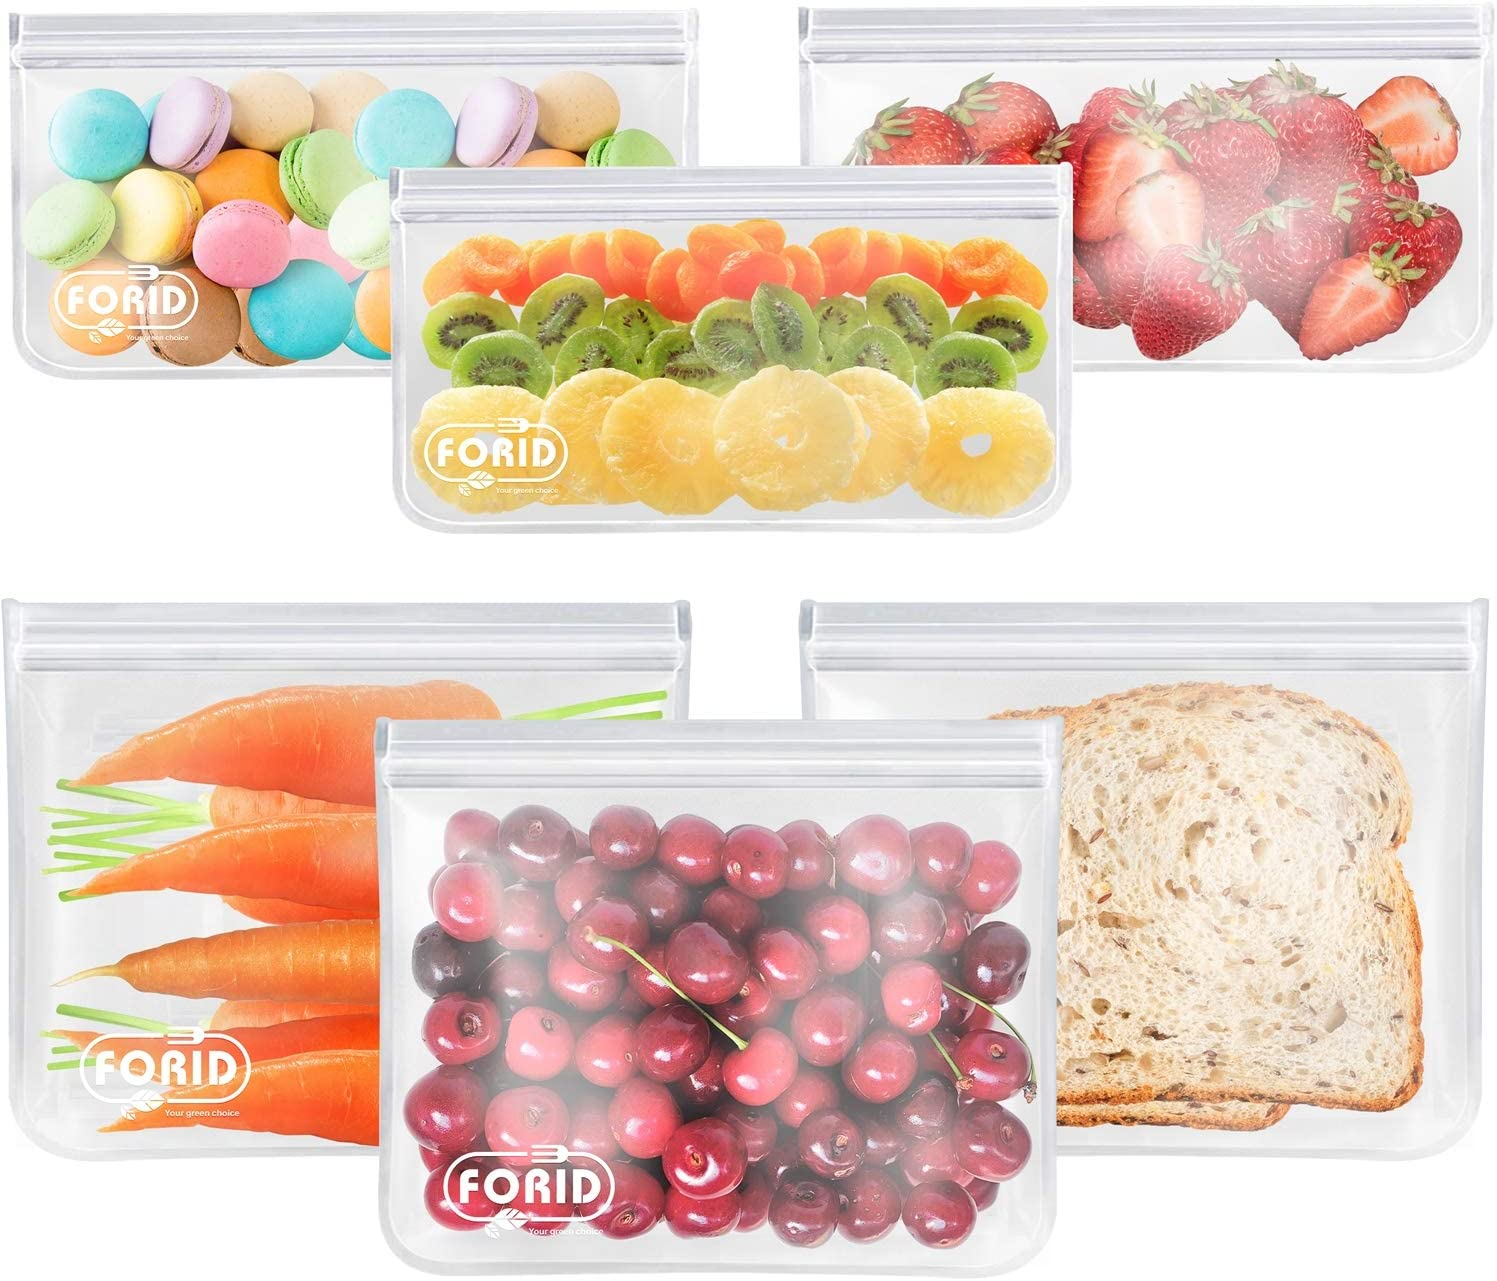 Reusable Storage Bags - 6 Pack BPA FREE Freezer bags (3 Reusable Sandwich Bags & 3 Reusable Snack Bags) FDA Grade Lunch Bag with Zip-lock for Food Travel Items Storage EXTRA THICK Leakproof